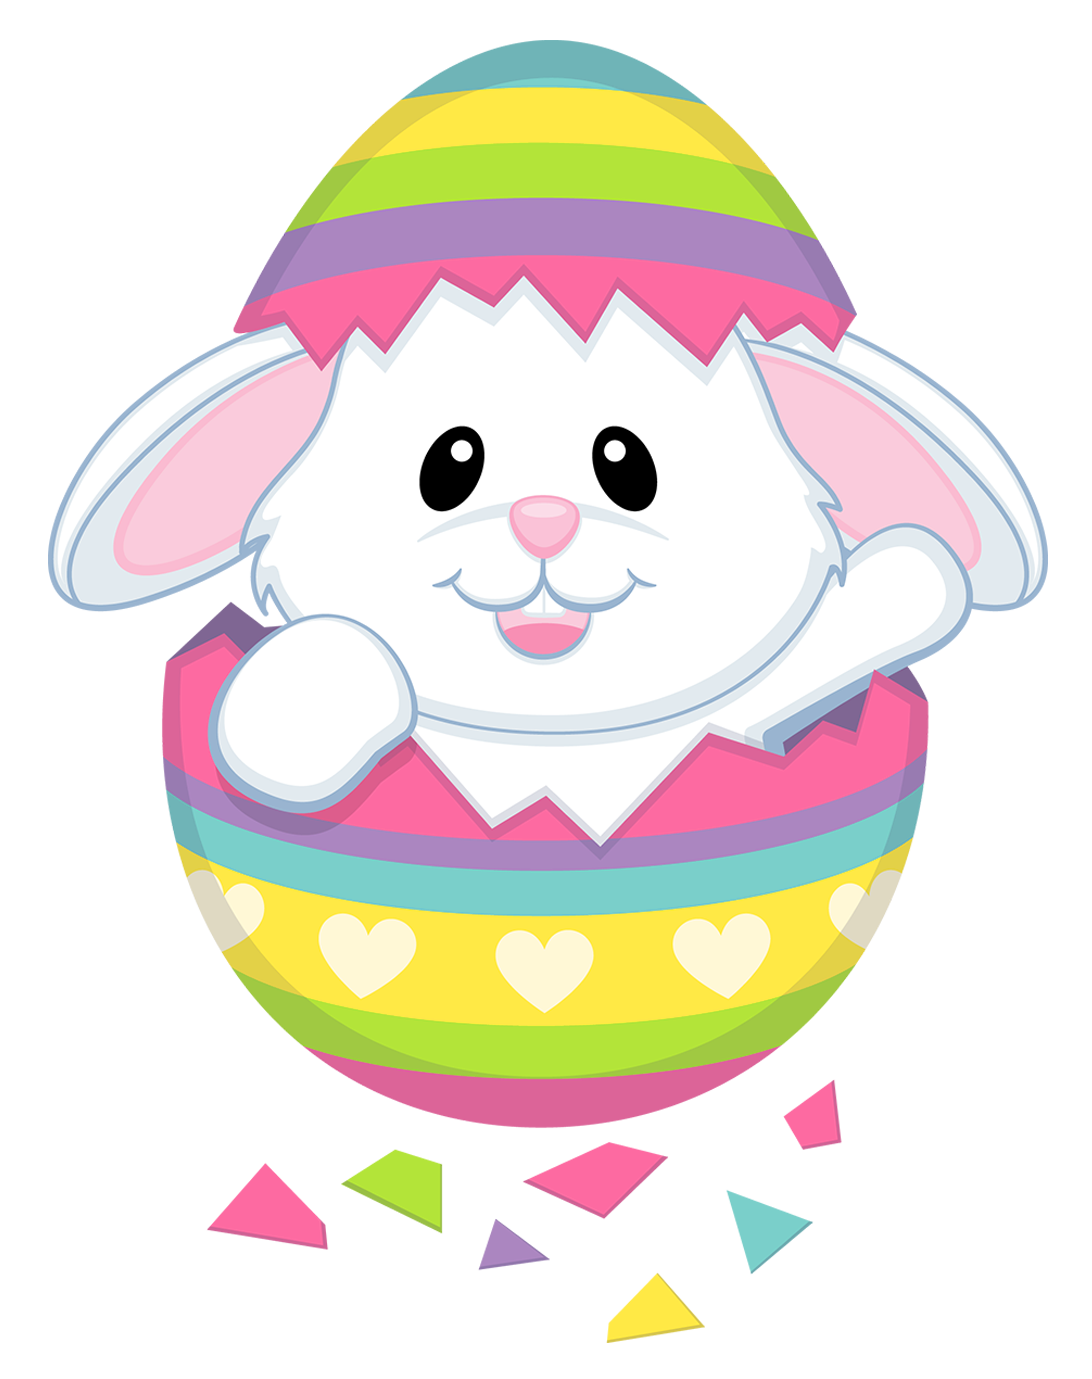 Cute bunny transparent png. Clipart easter character